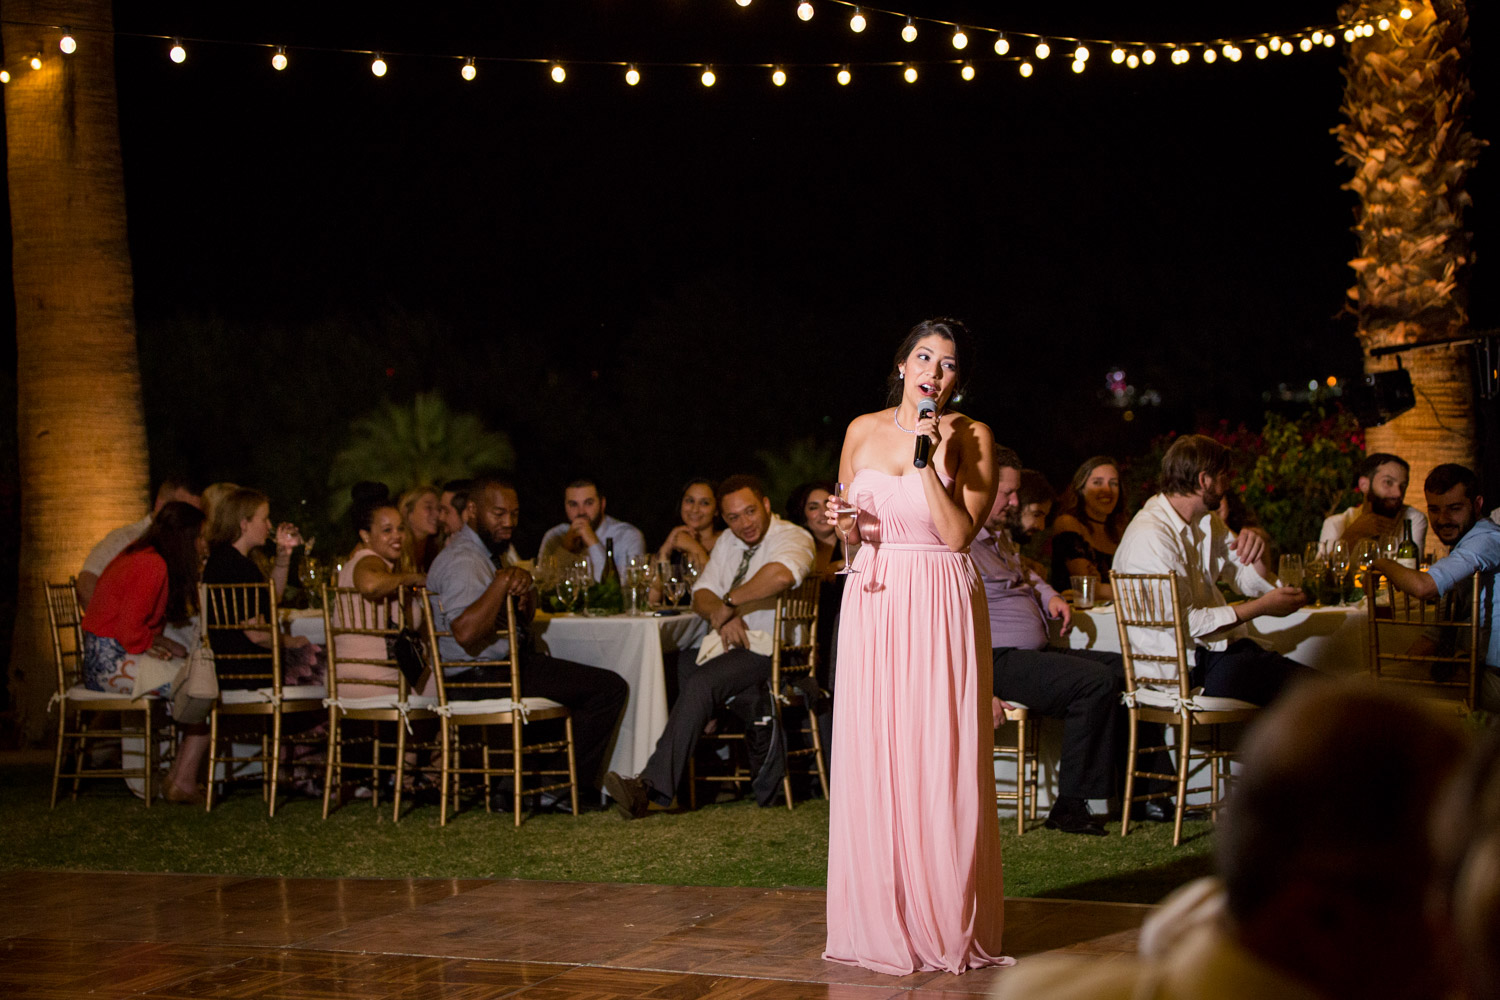 Maid of honor giving a toast, Cavin Elizabeth Photography